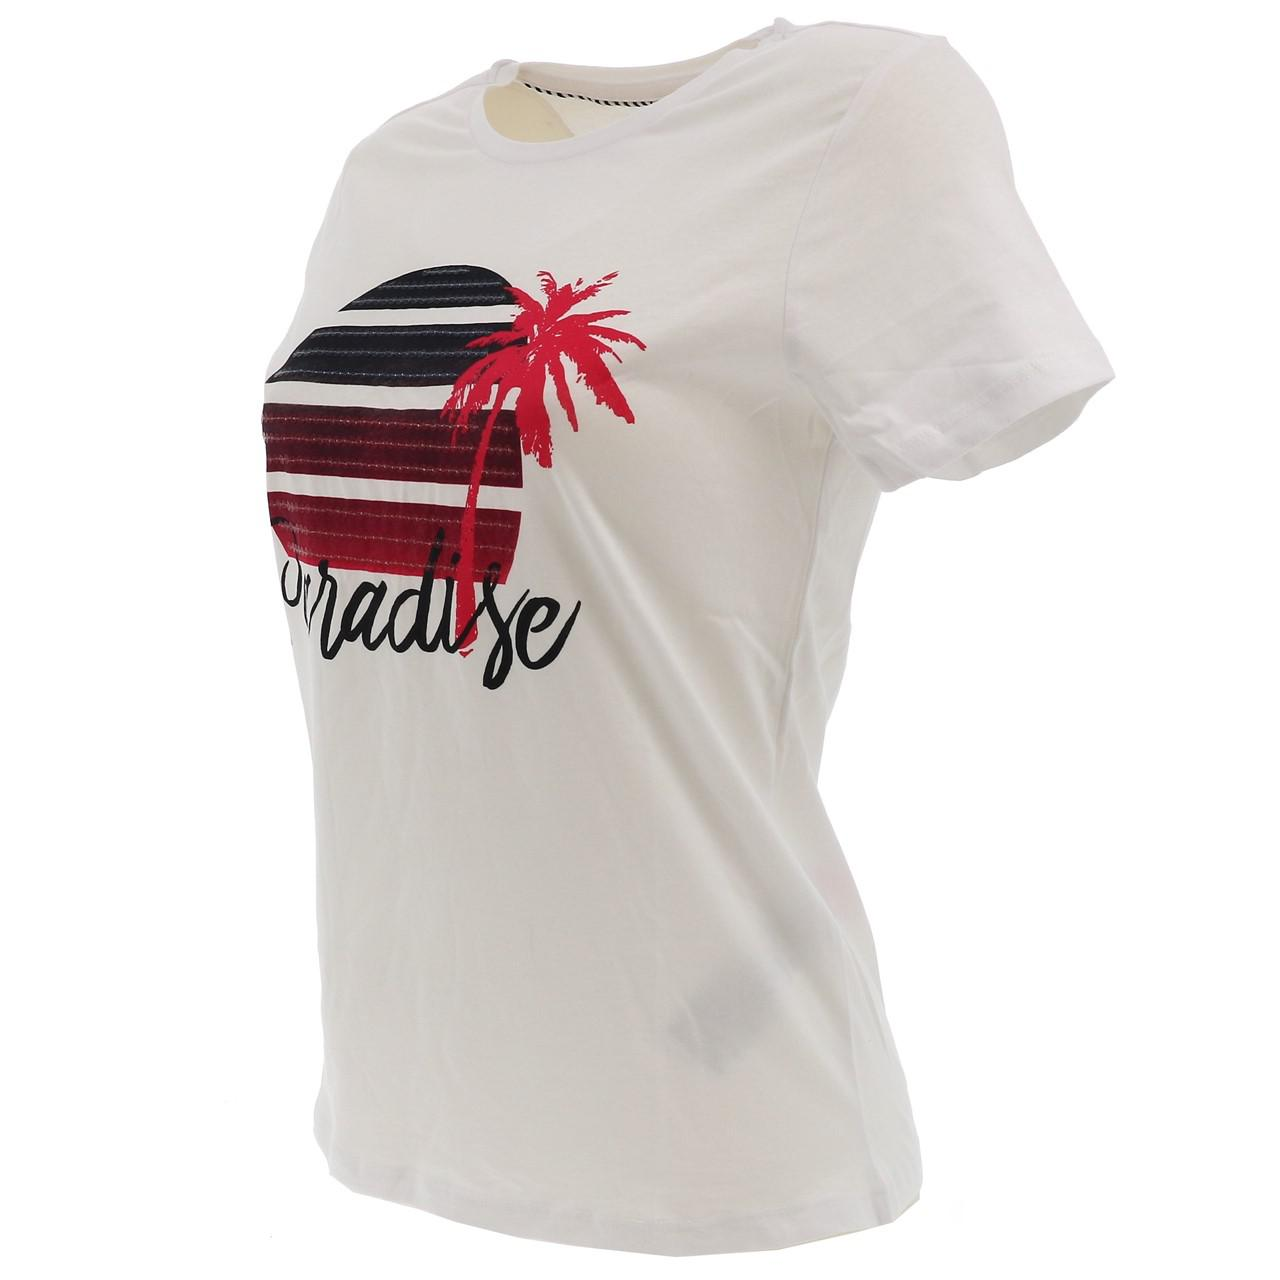 Tee-shirt-manches-courtes-Only-Paradise-white-tee-l-sp2-Blanc-17500-Neuf miniature 4